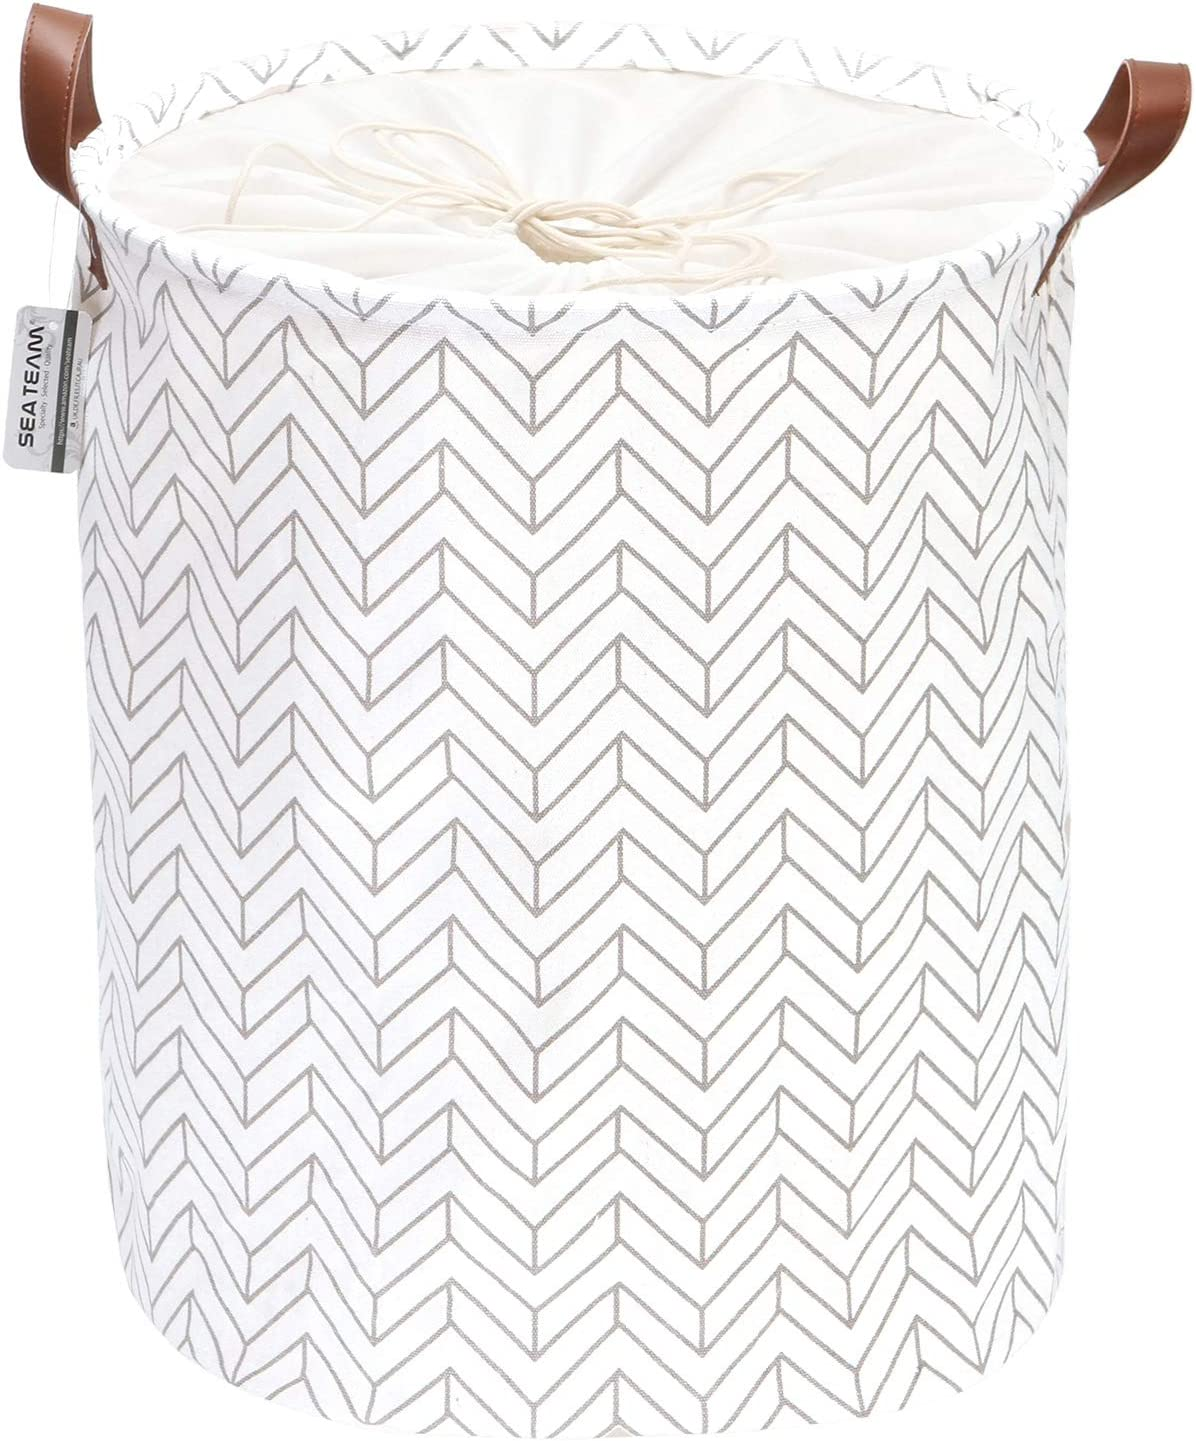 Sea Team Arrowhead Pattern Laundry Hamper Canvas Fabric Laundry Basket Collapsible Storage Bin with PU Leather Handles and Drawstring Closure, 19.7 by 15.7 inches, Waterproof Inner, Grey